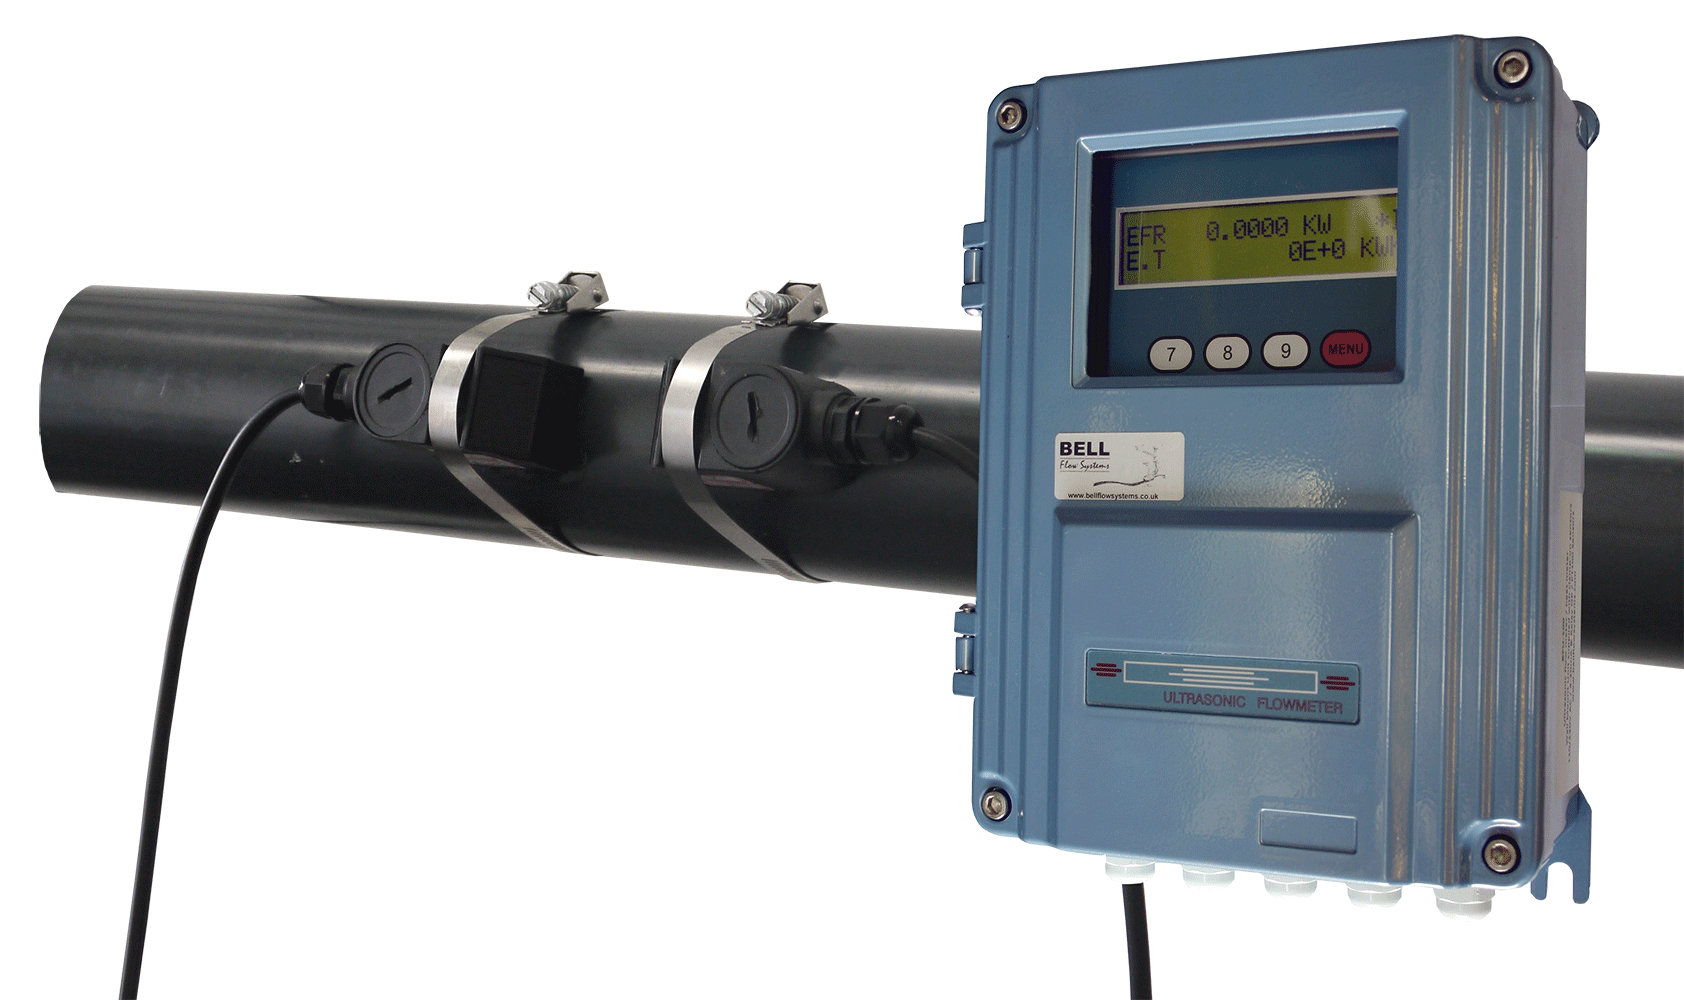 ultrasonic flow meter thesis 1 implementation of a msp430-based ultrasonic distance measurement module a thesis submitted in partial fulfillment of the requirements for the degree of.